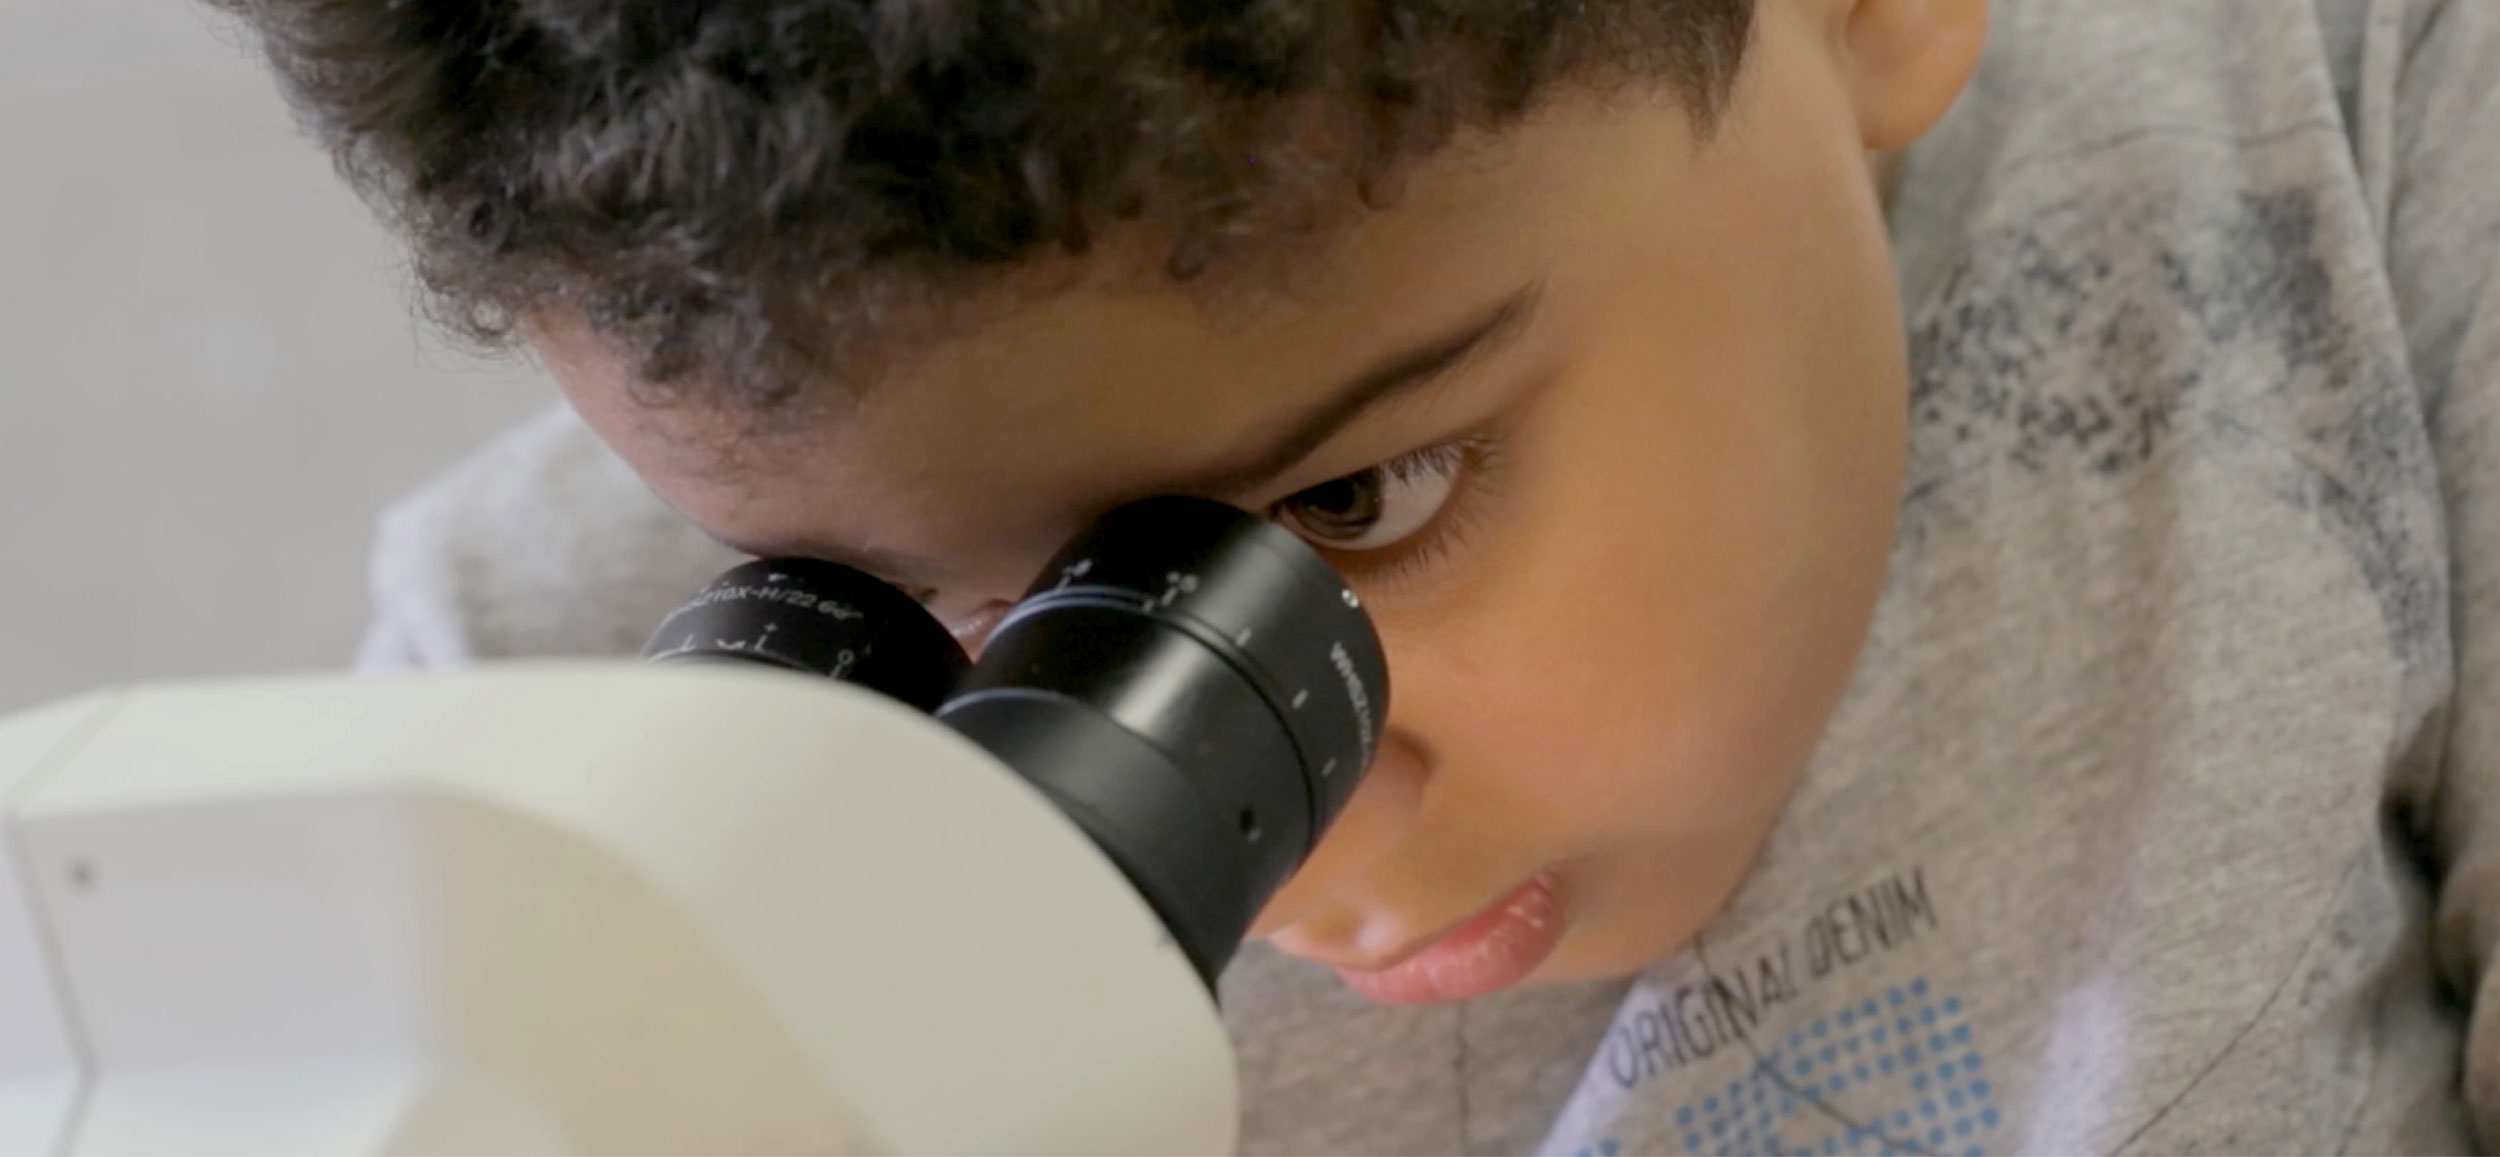 MIC video and photography production of young boy looking in a microscope